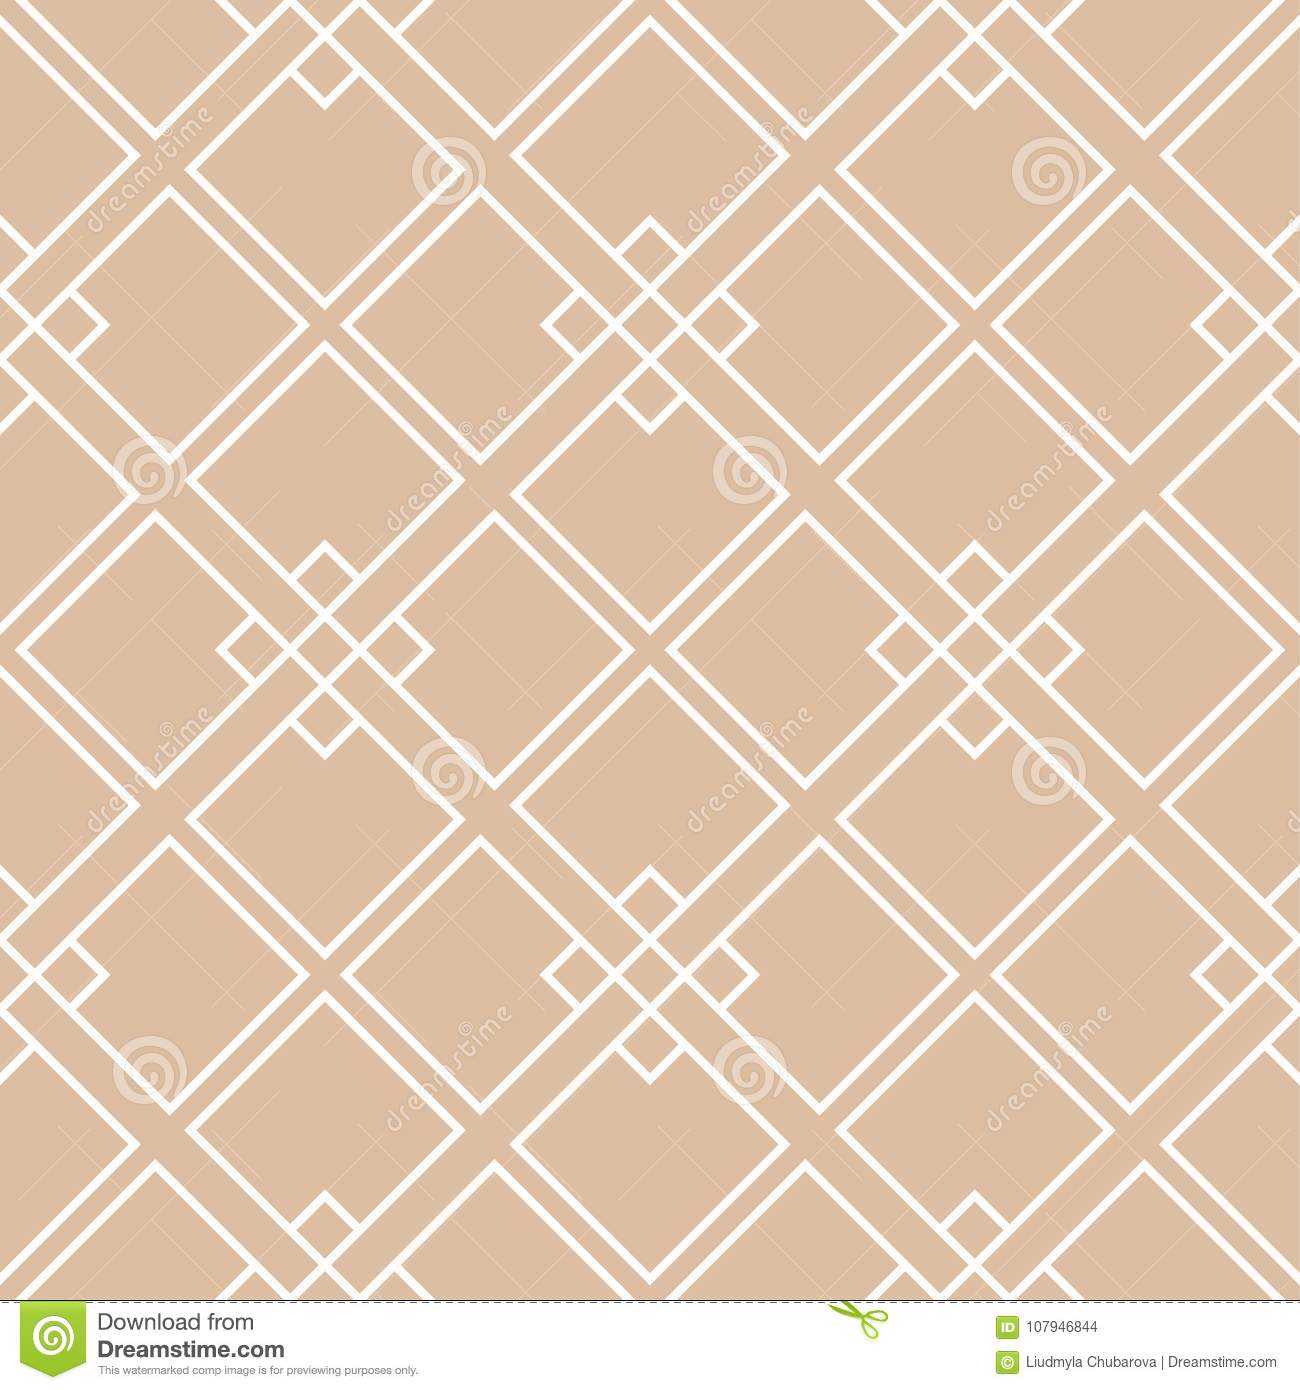 Beige and white geometric ornament. Seamless pattern